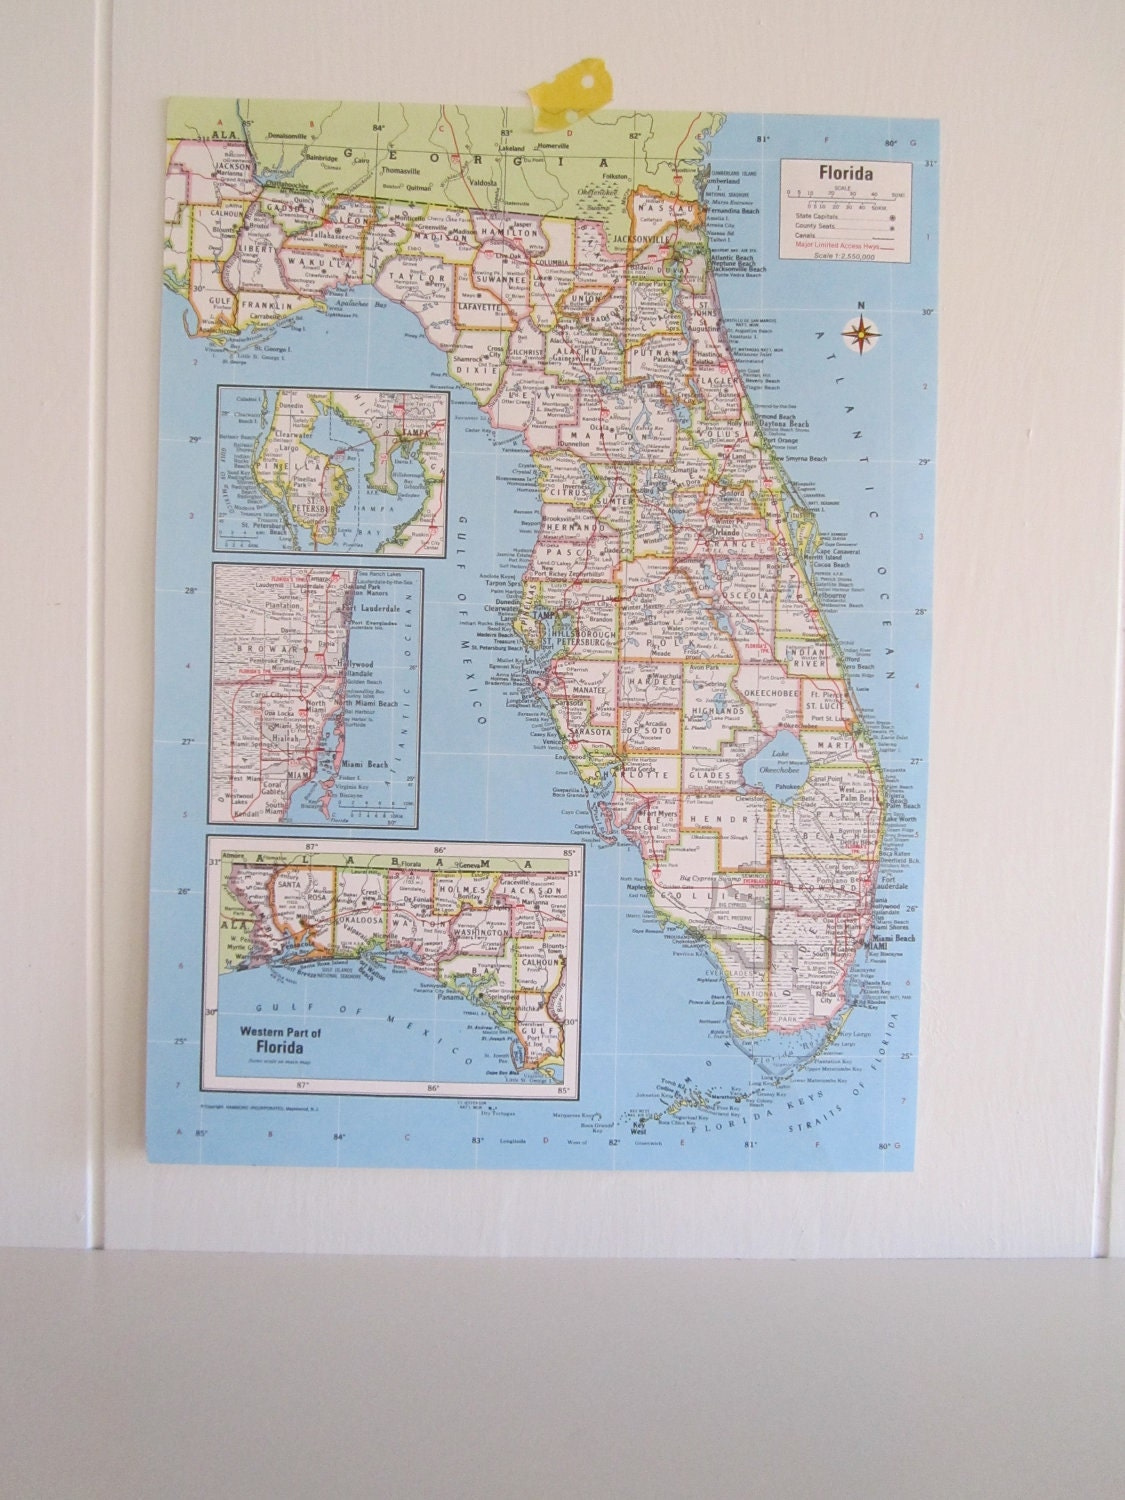 il_fullxfull.325854721 Florida Map Of Counties on map of daytona beach, indiana counties, map of u.s. states, map of fl, map of jacksonville, map of lake, map of home, county map florida counties, map of states of the usa, map of orange, map of chicago community areas, florida state map counties, map of louisiana parishes, map of states of india, map of new england, map of england with towns, map of miami, florida map with counties, california counties, texas counties,